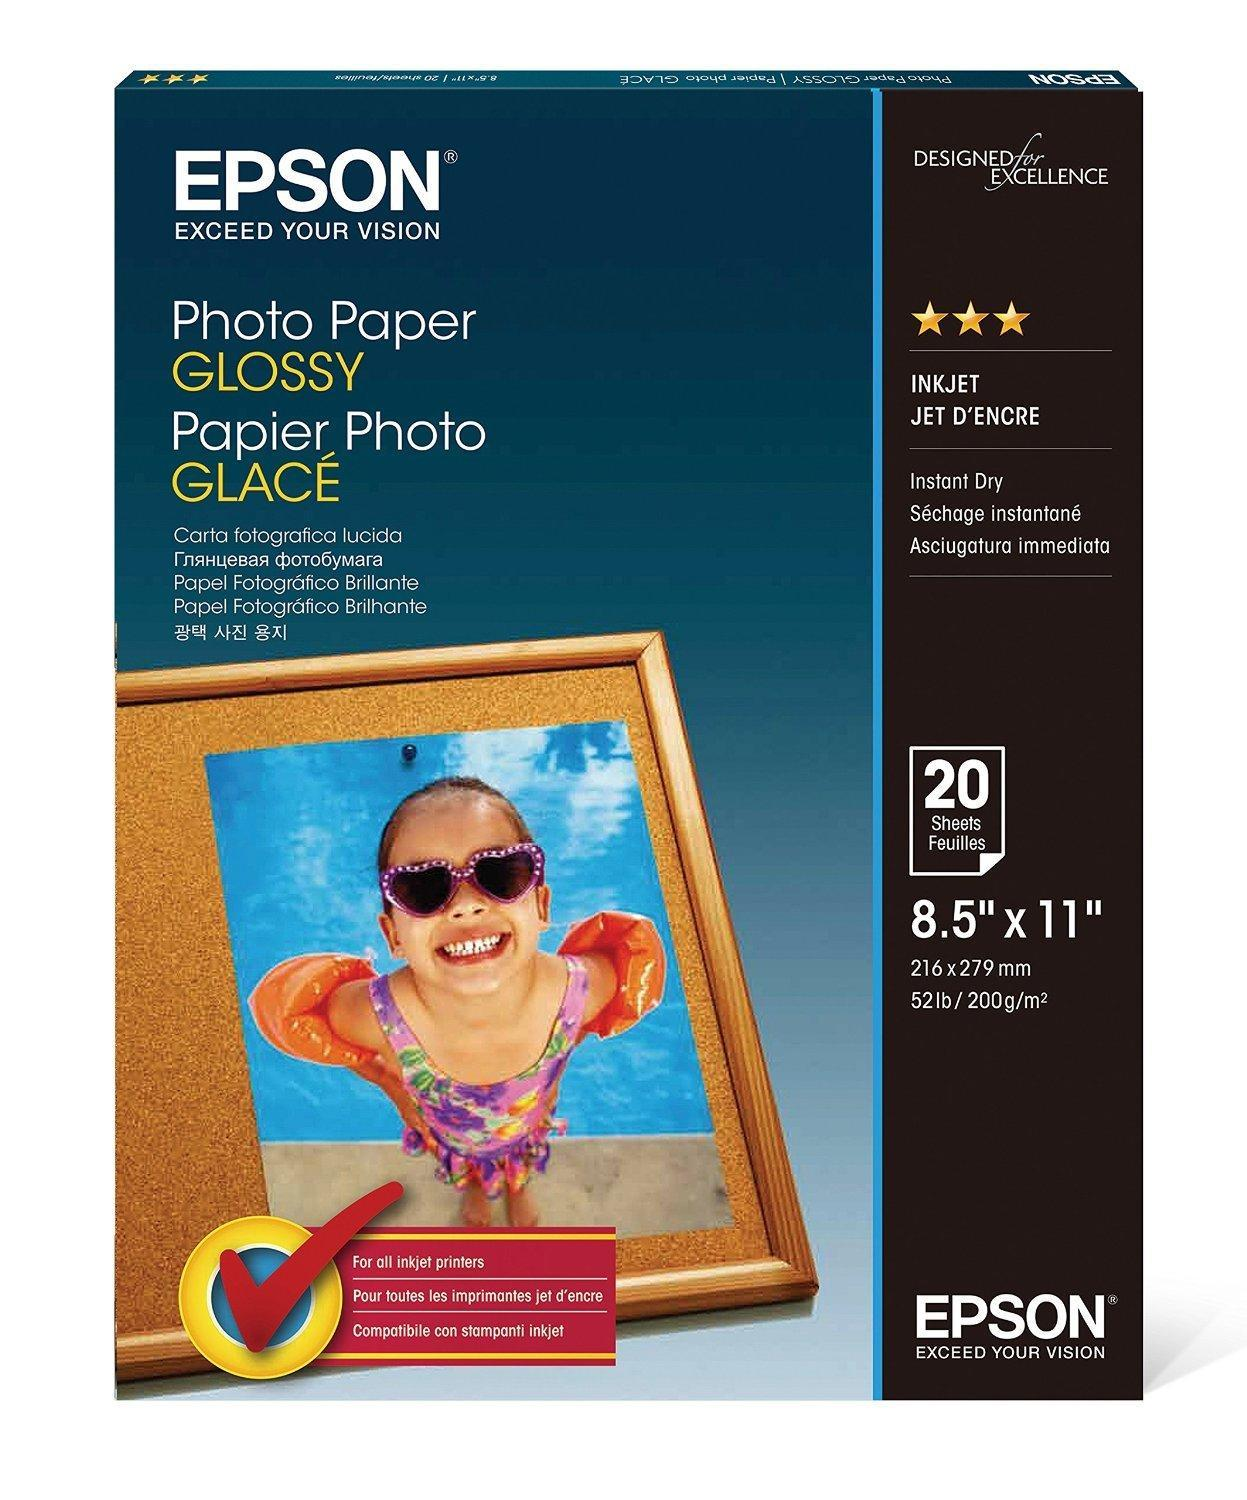 EPSON S041141 20 Sheets Photo Paper, Glossy, 8.5 x 11